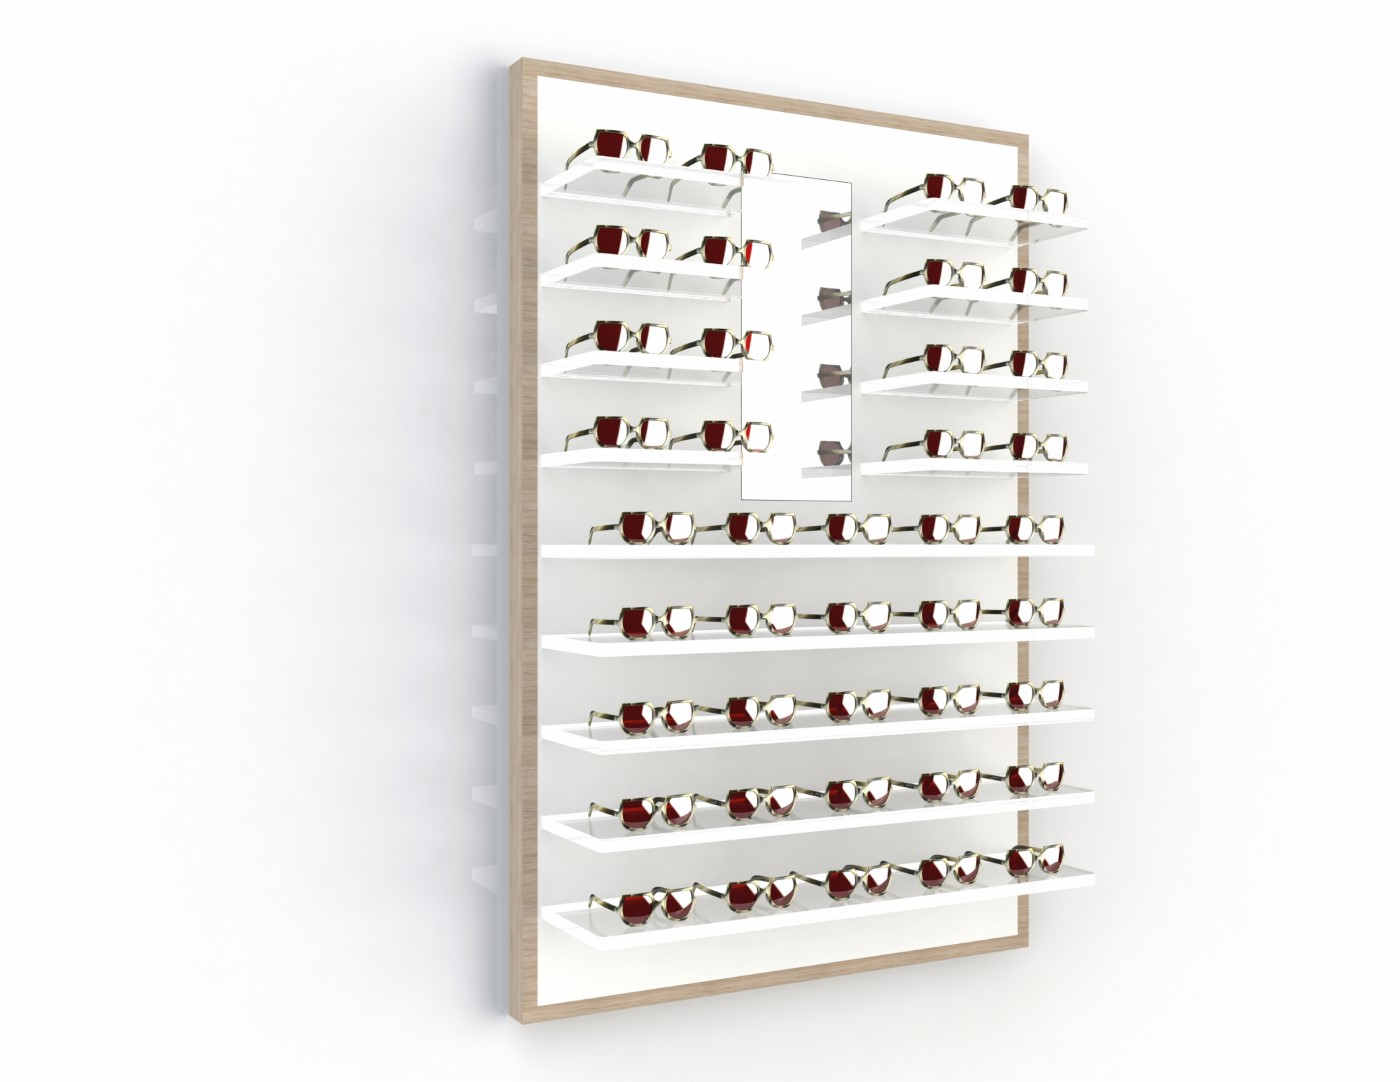 <strong>#58151ST</strong><br>13x 20mm acrylic shelves<br>Mirror<br>41 frames